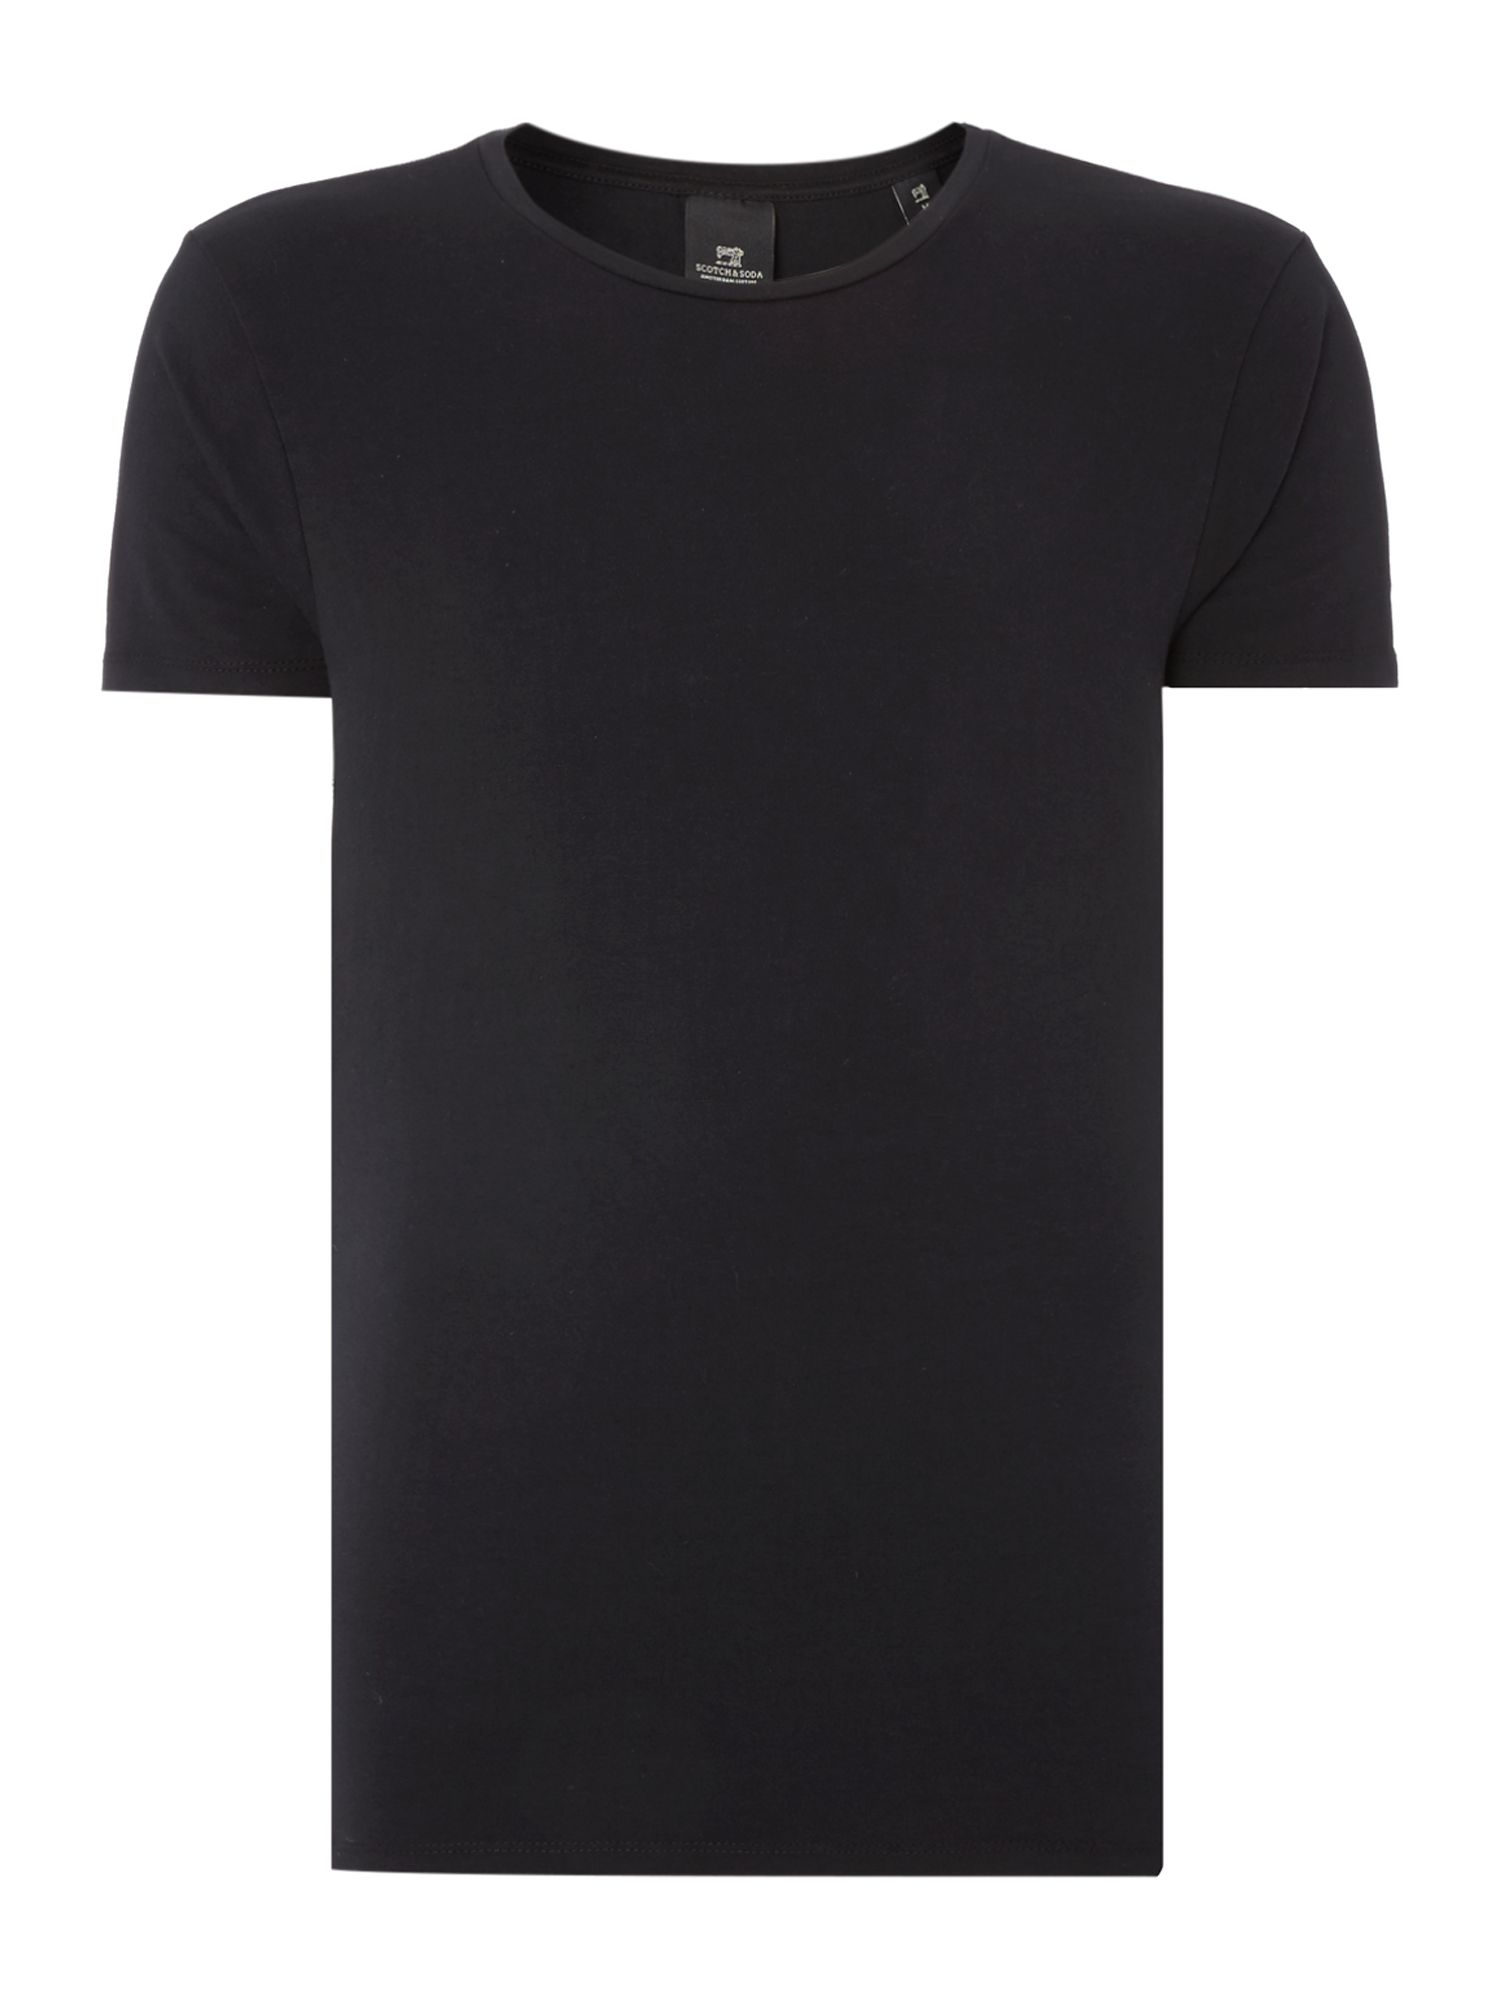 Men's Scotch & Soda Classic crewneck tee, Black